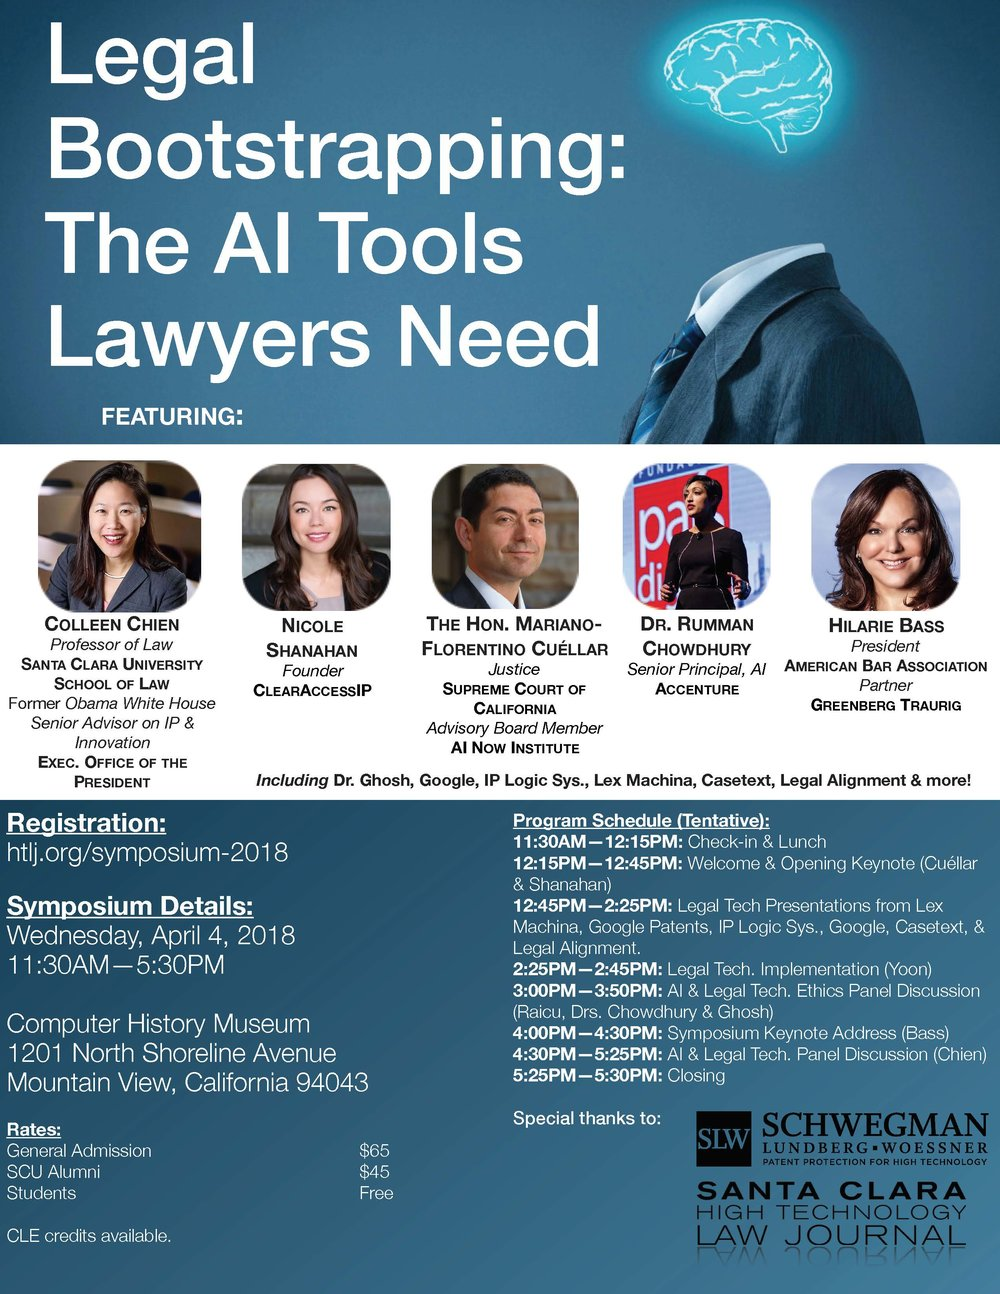 - Discussion TopicsAI-Backed Legal Tools &EthicsLocation DetailsComputer History Museum, located at 1201 North Shoreline Avenue,Mountain View, California.TimeThe Symposium will be held on April 4th, 2018, from 11:30AM –6:00PM.Lunch will be served prior to the start of the symposium.CLE credits are available.Registration FeesGeneral Admission — $65SCU Alumni/HTLJ-Affiliate — $45Student — Free